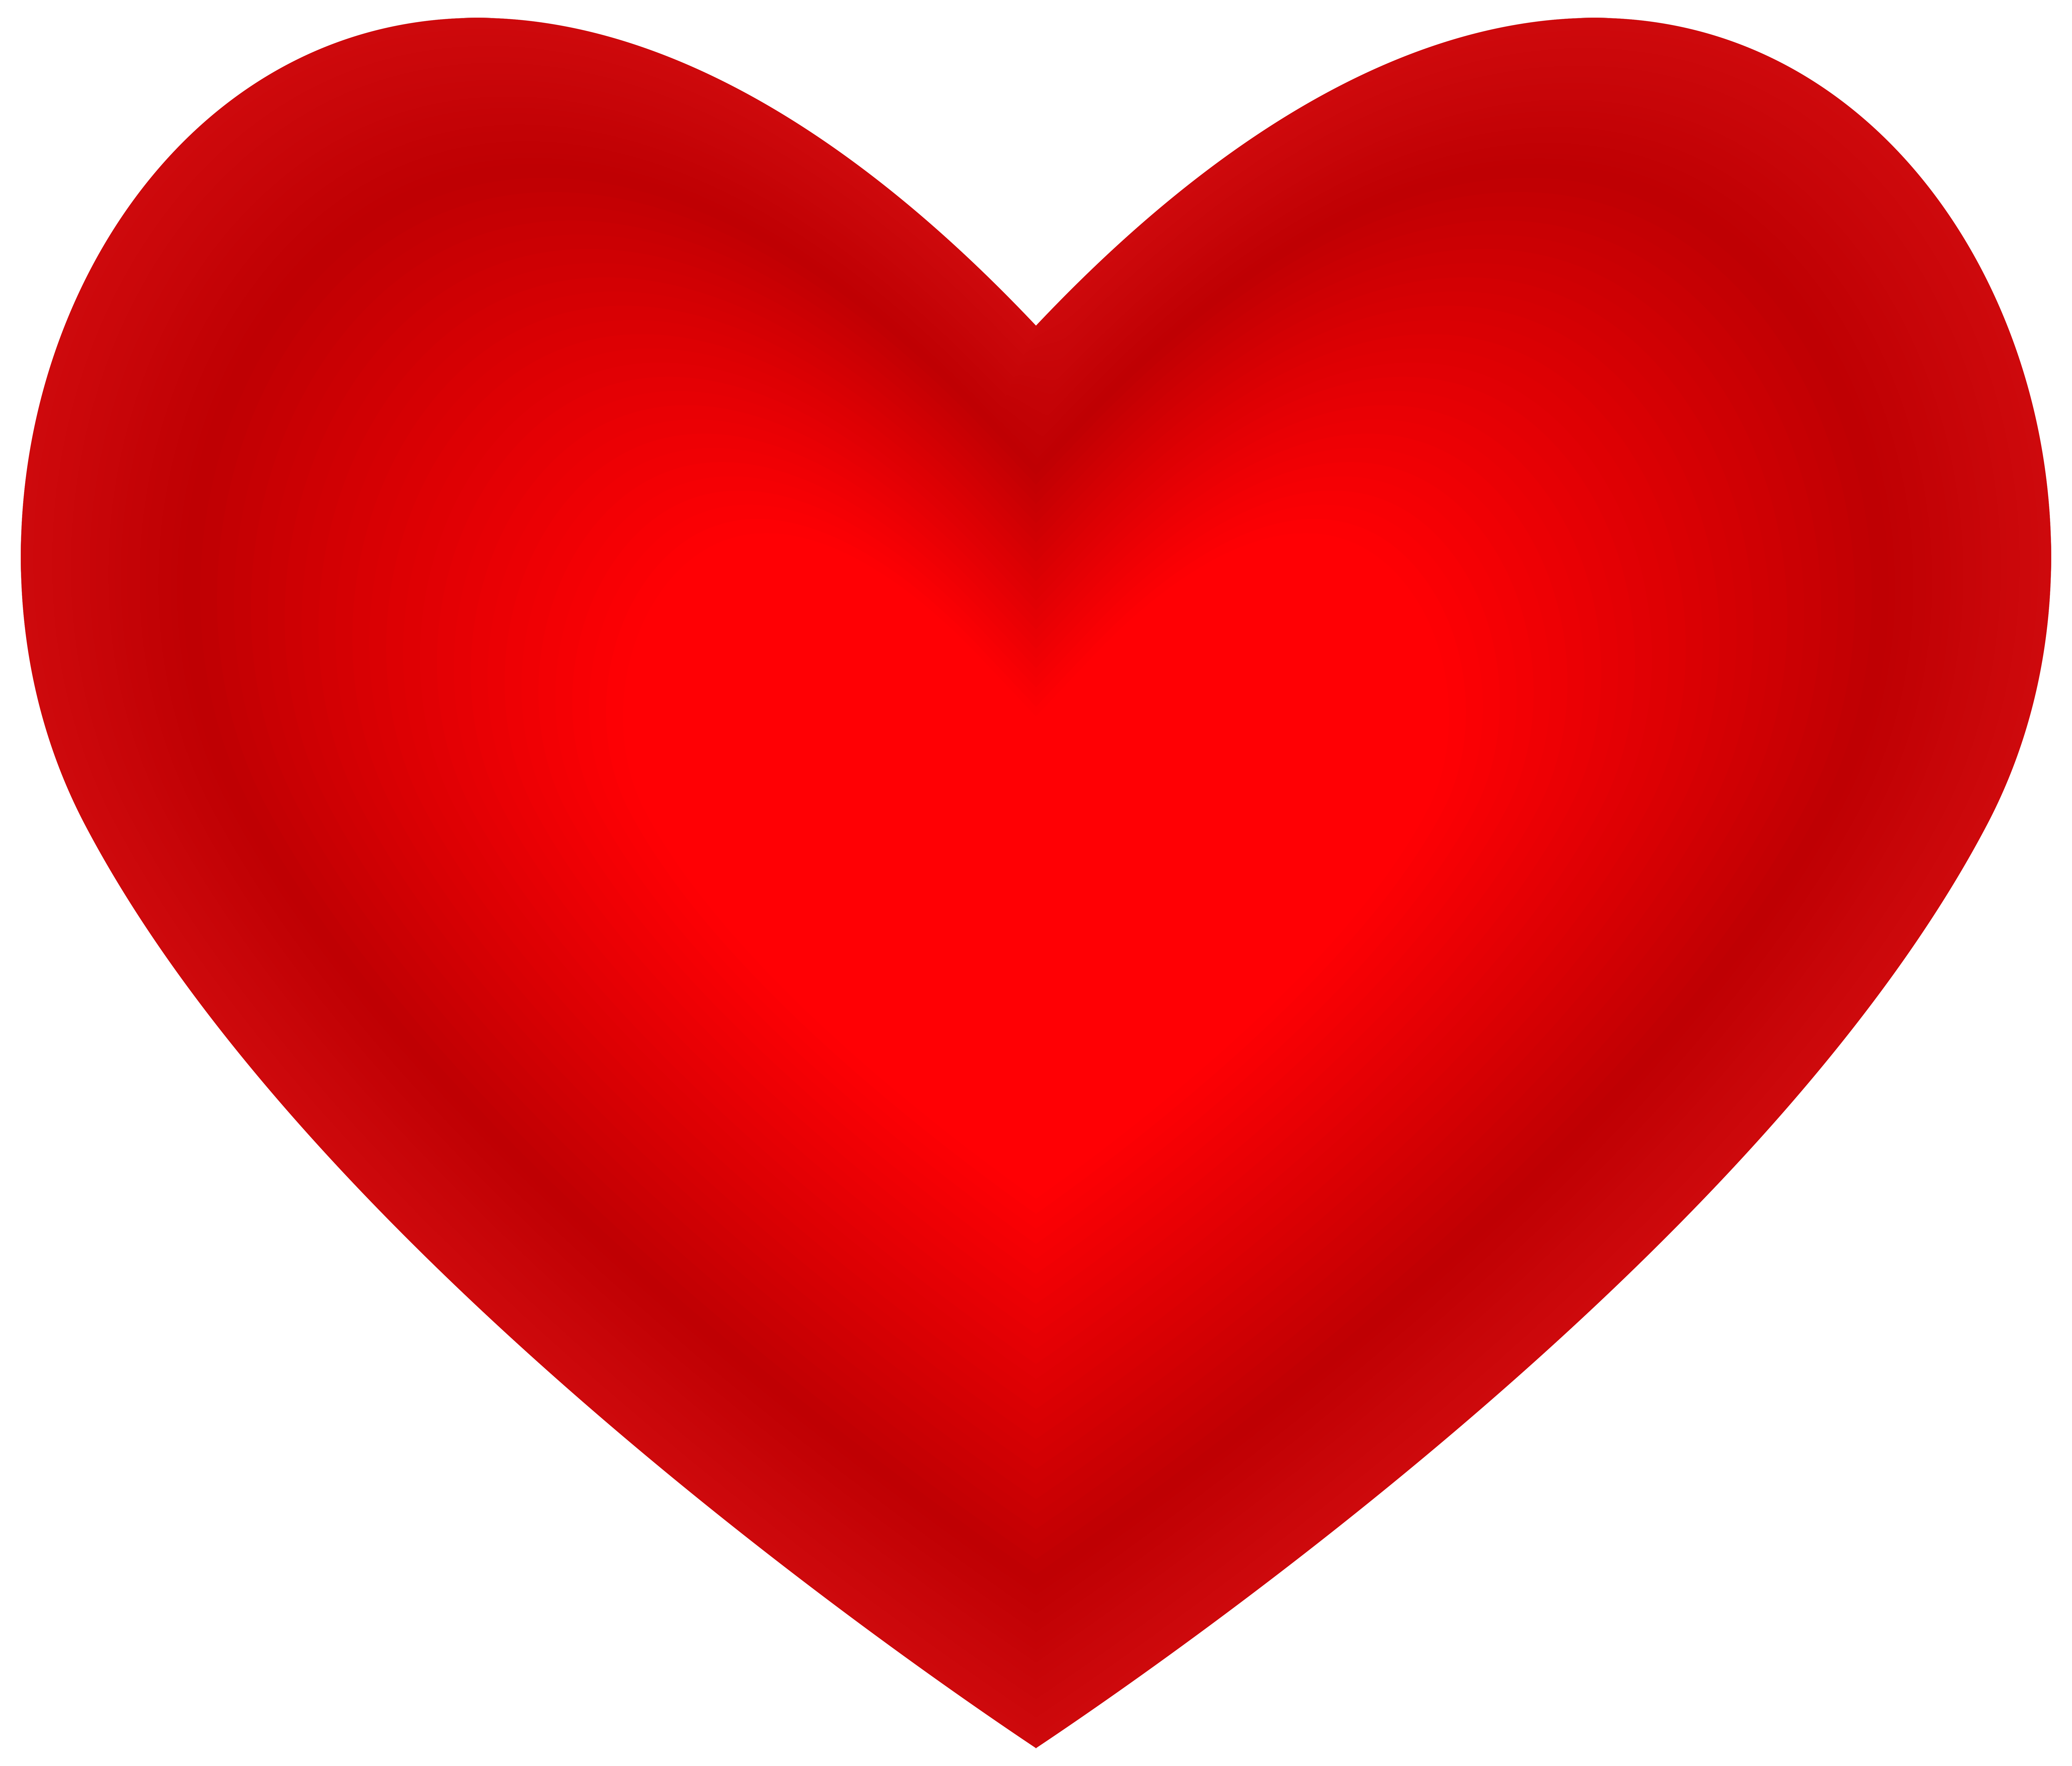 Wedding heart clipart png graphic royalty free download Red Heart Transparent PNG Image   Gallery Yopriceville - High ... graphic royalty free download